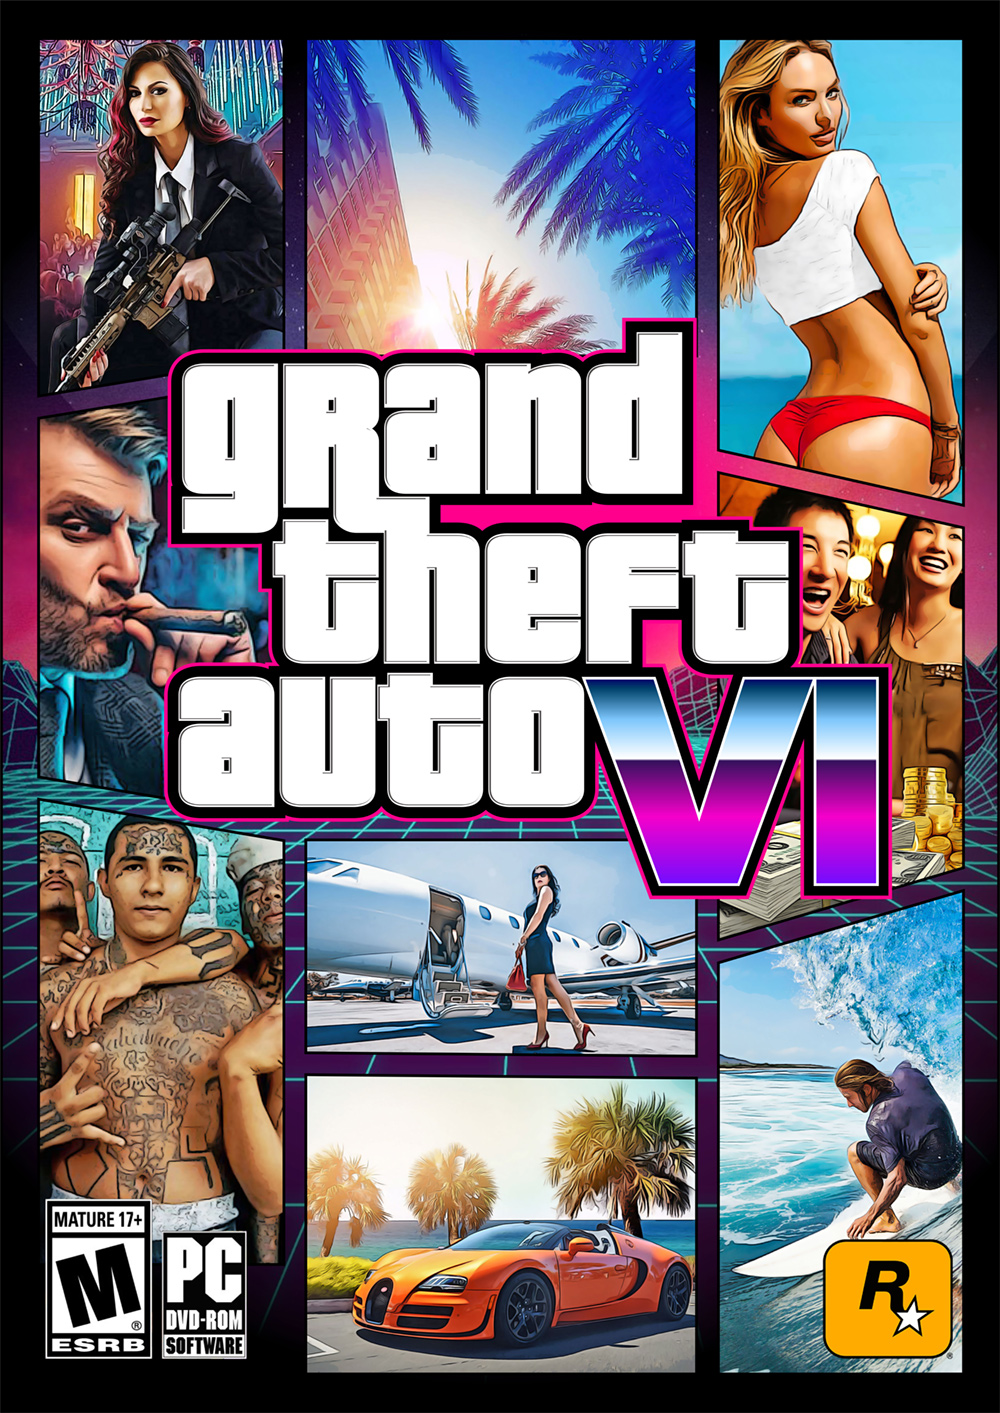 GTA VI could take place in the 80's